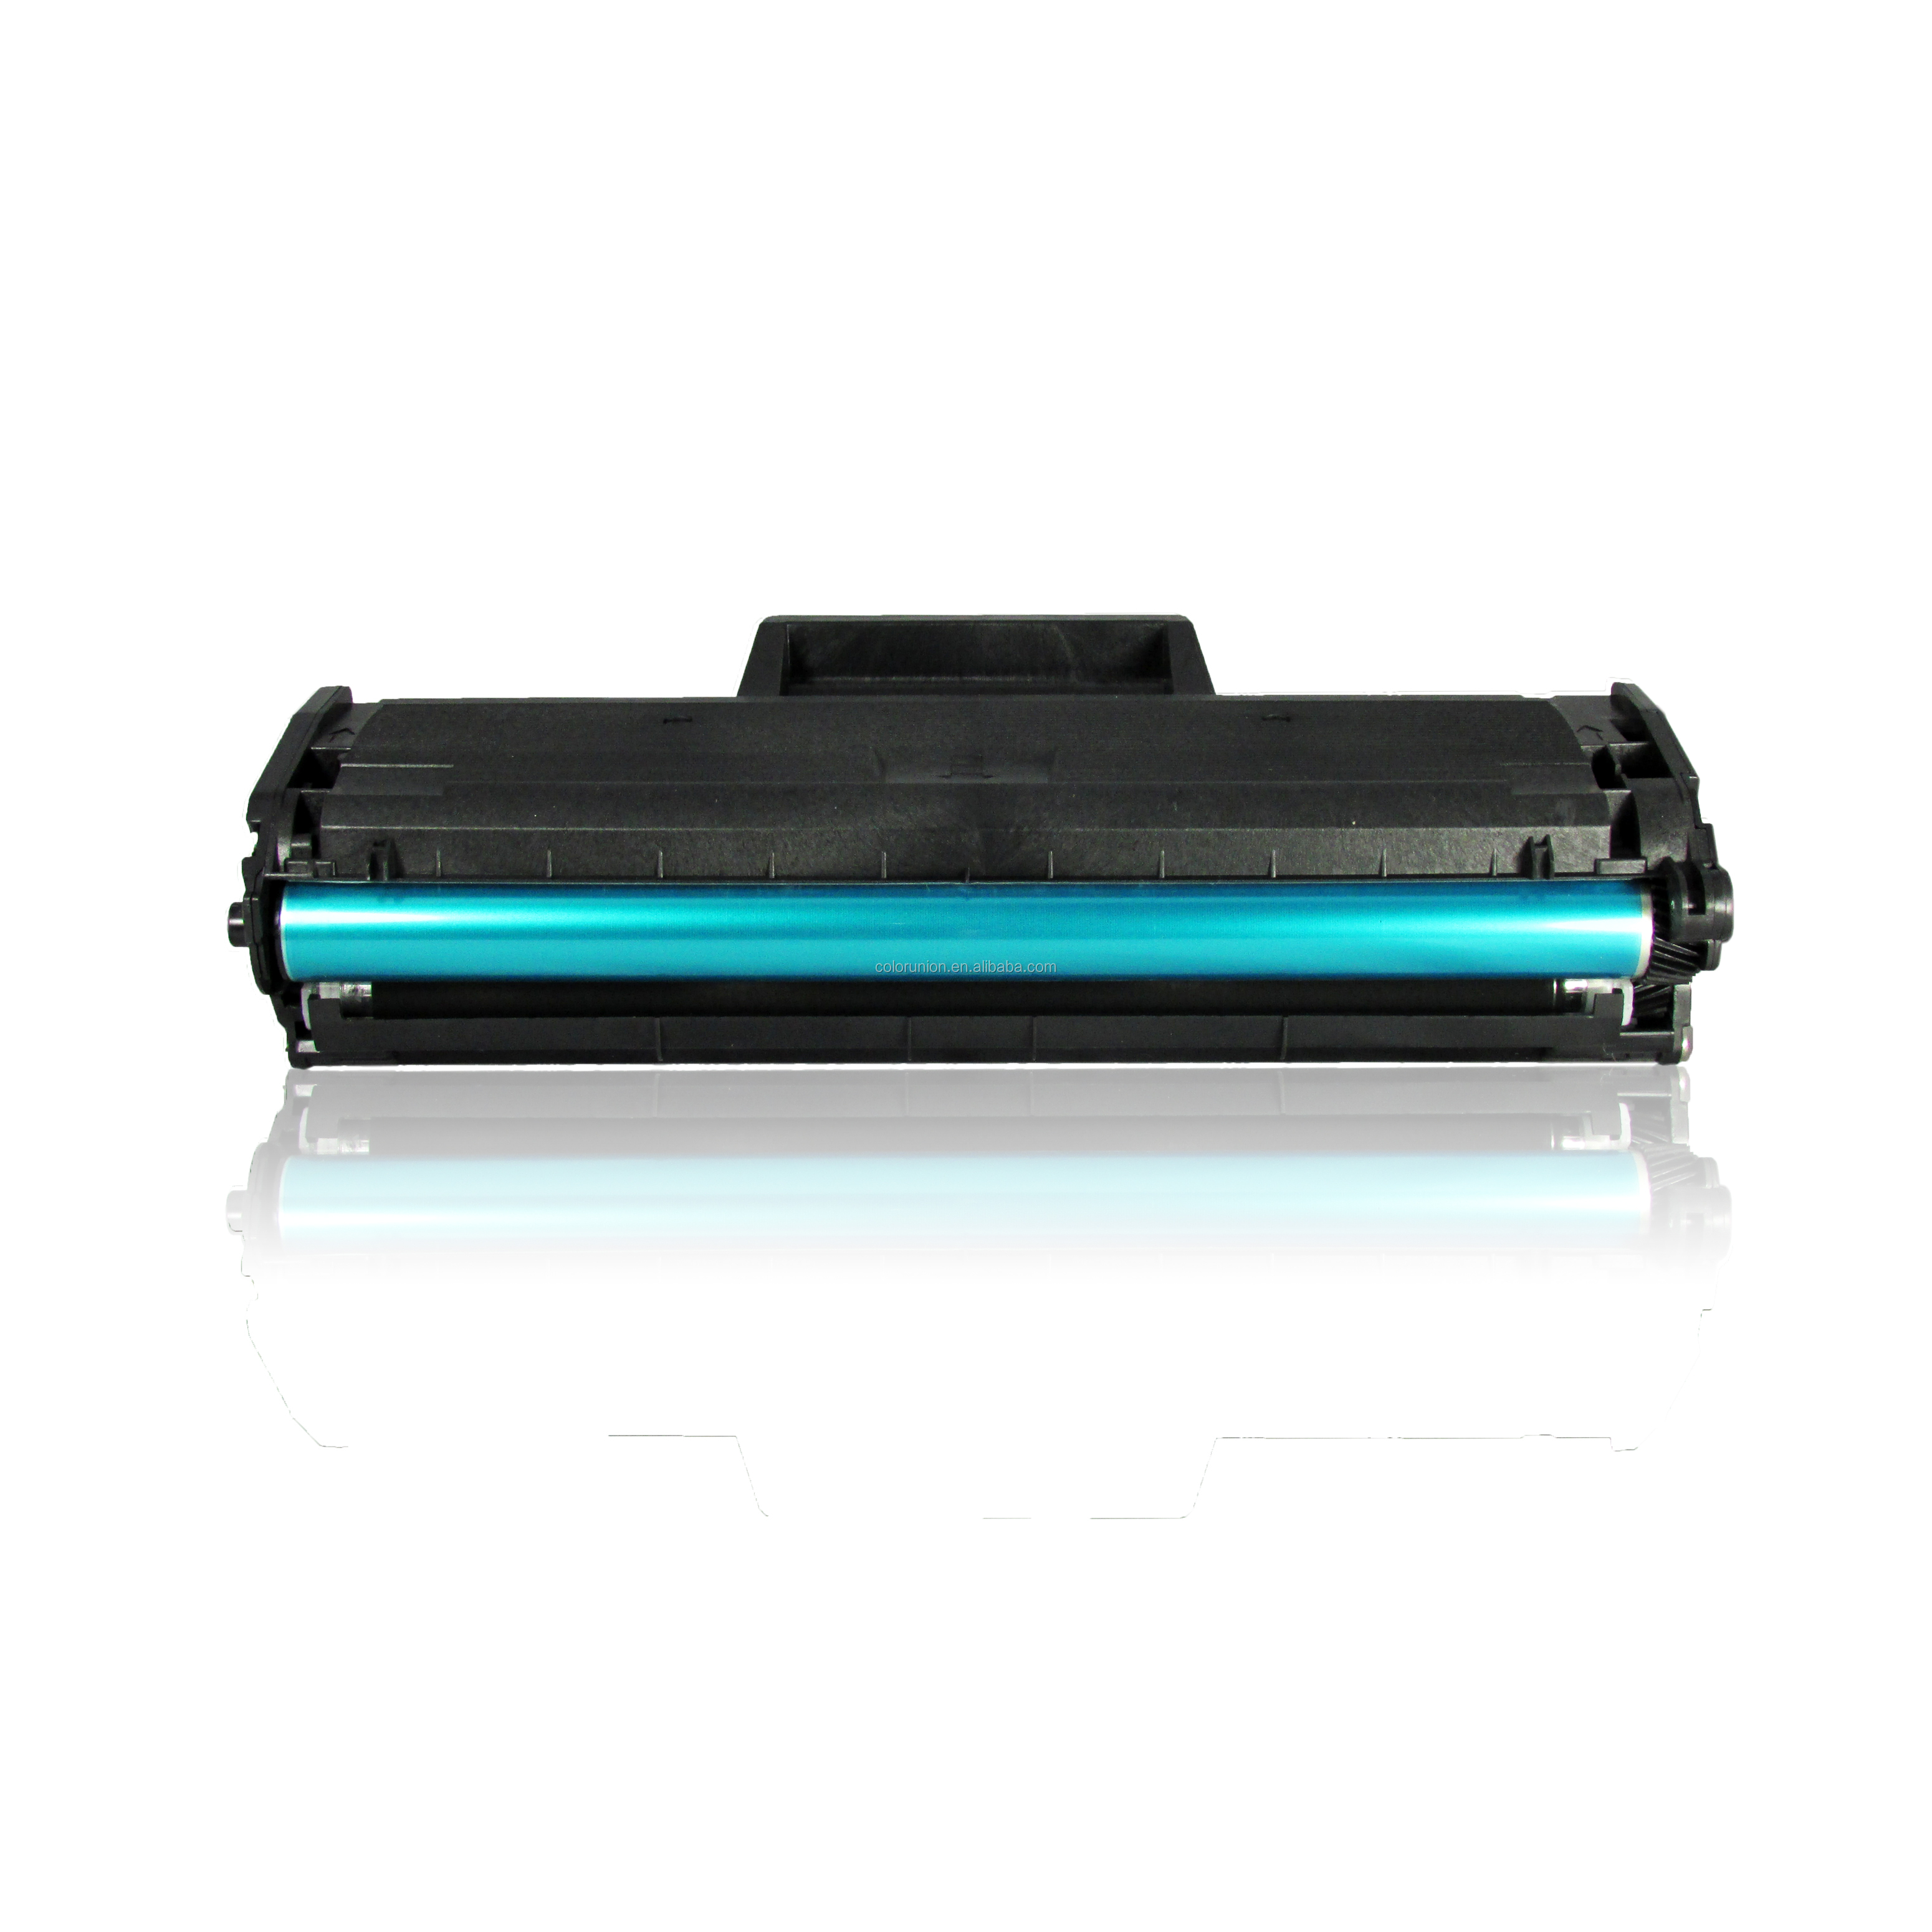 Printer toner cartridge d101s for Samsung ML2161/ML2156/ML2160W/ML2165W/ML2168W